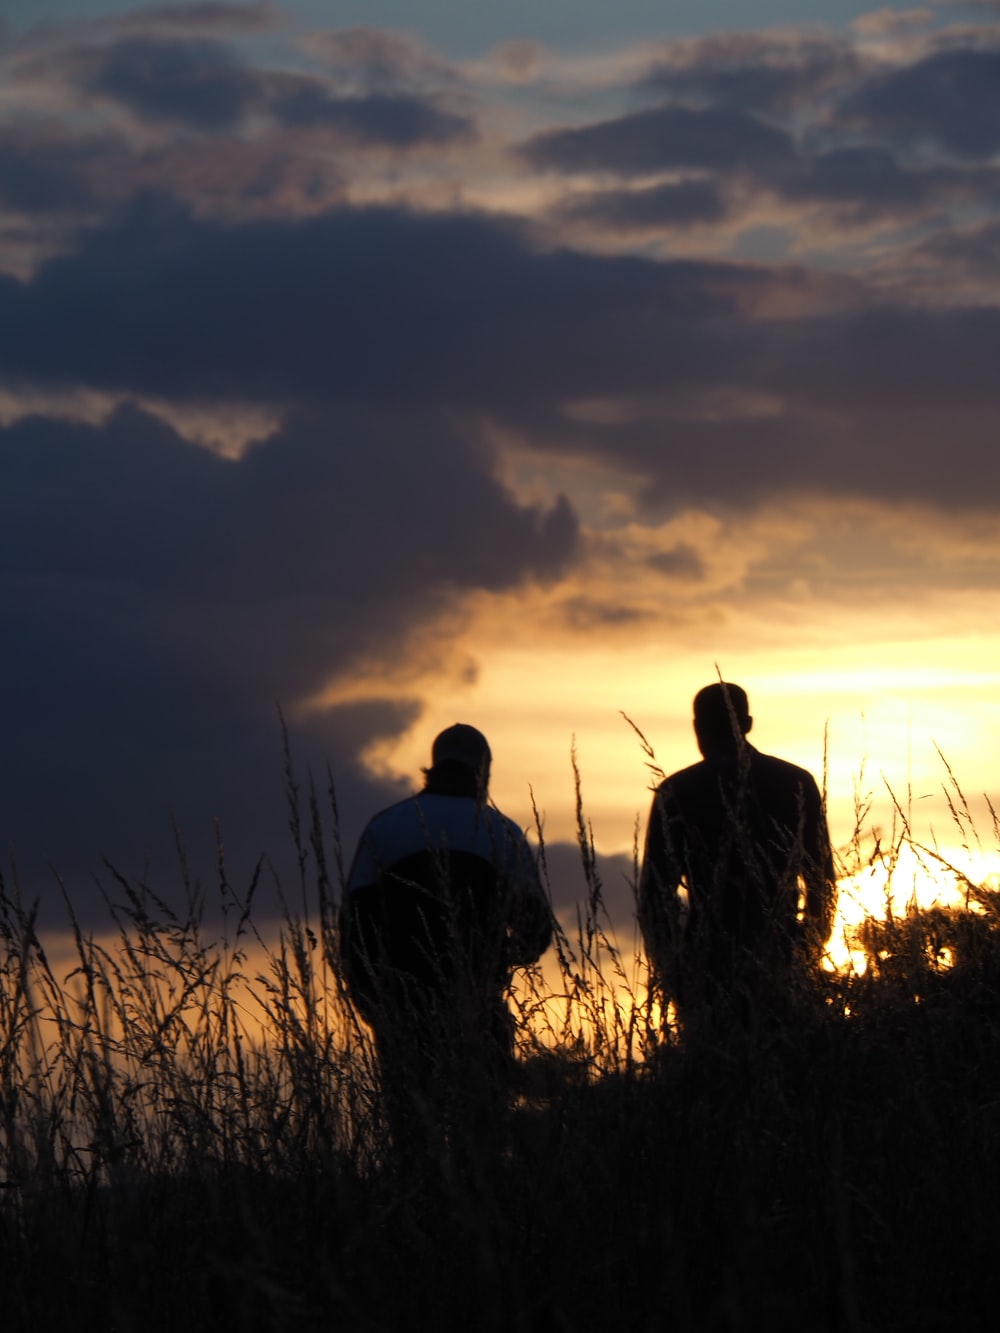 silhouette of 2 men standing on grass field during sunset